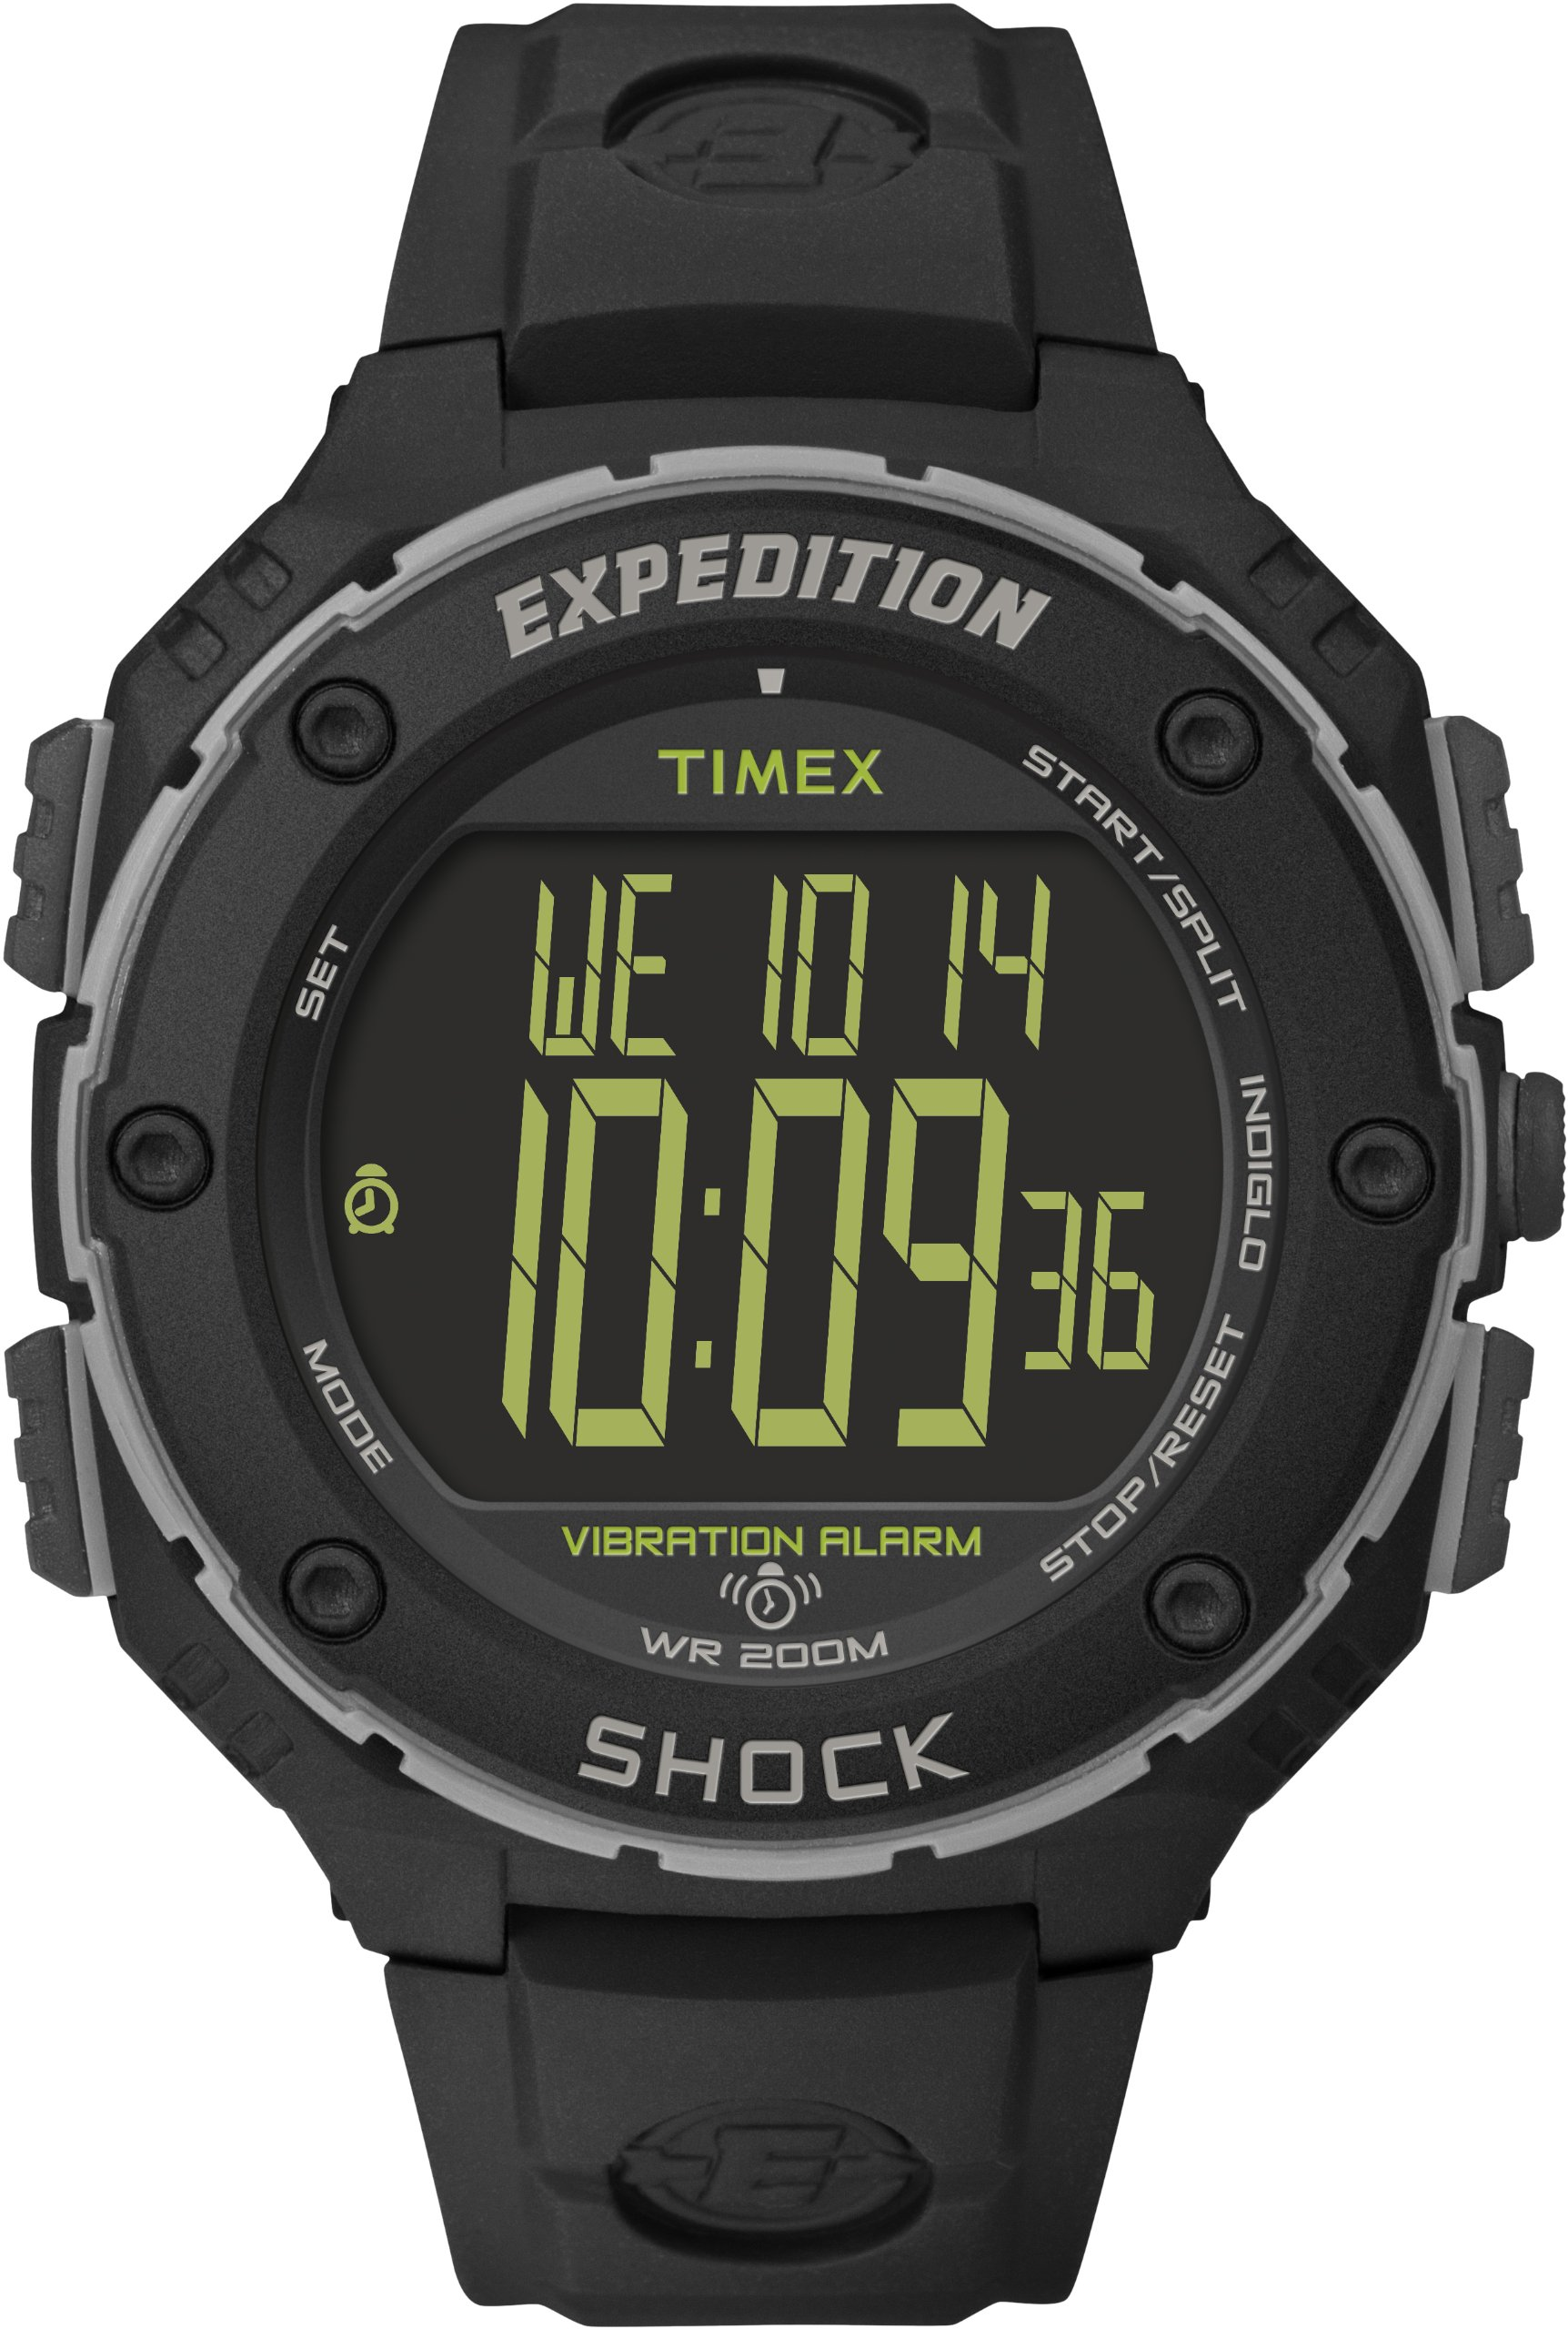 Timex Expedition Men's T49950 Watch with Black Dial Digital Display and Black Resin Strap